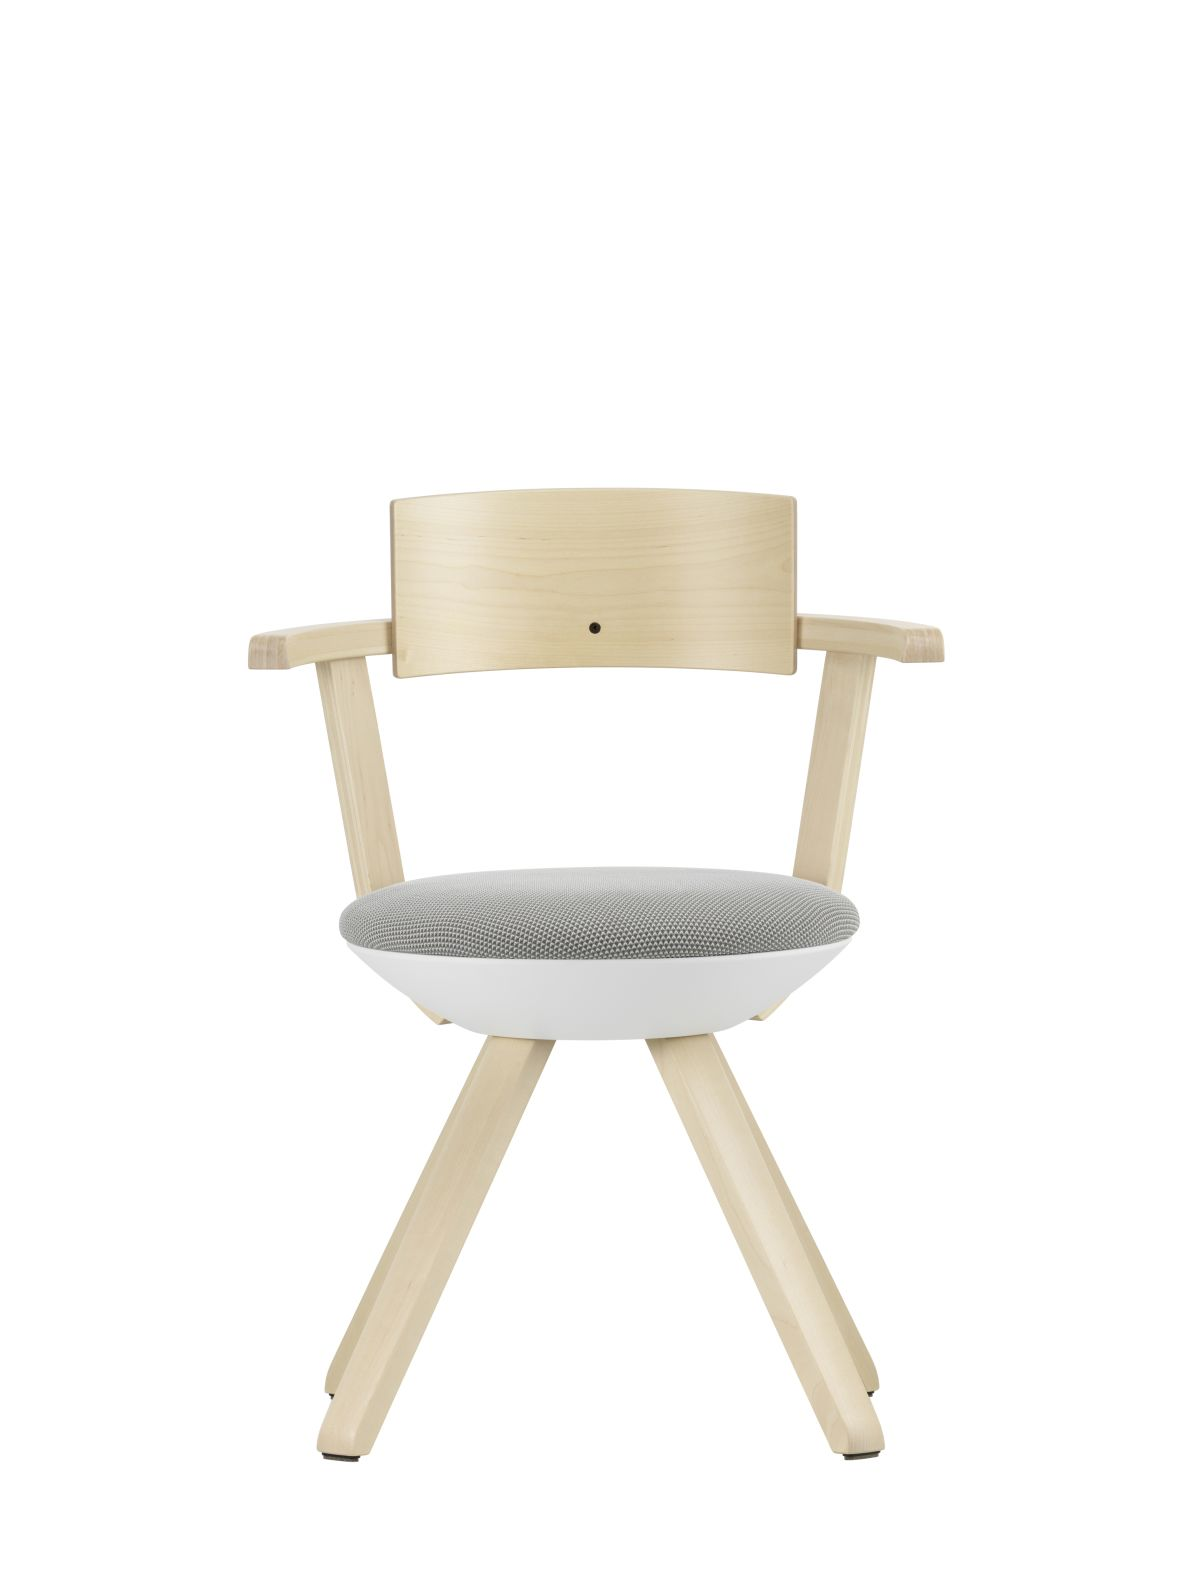 Rival Chair KG002 silver birch lacquer light grey / cream 3d knit upholstery